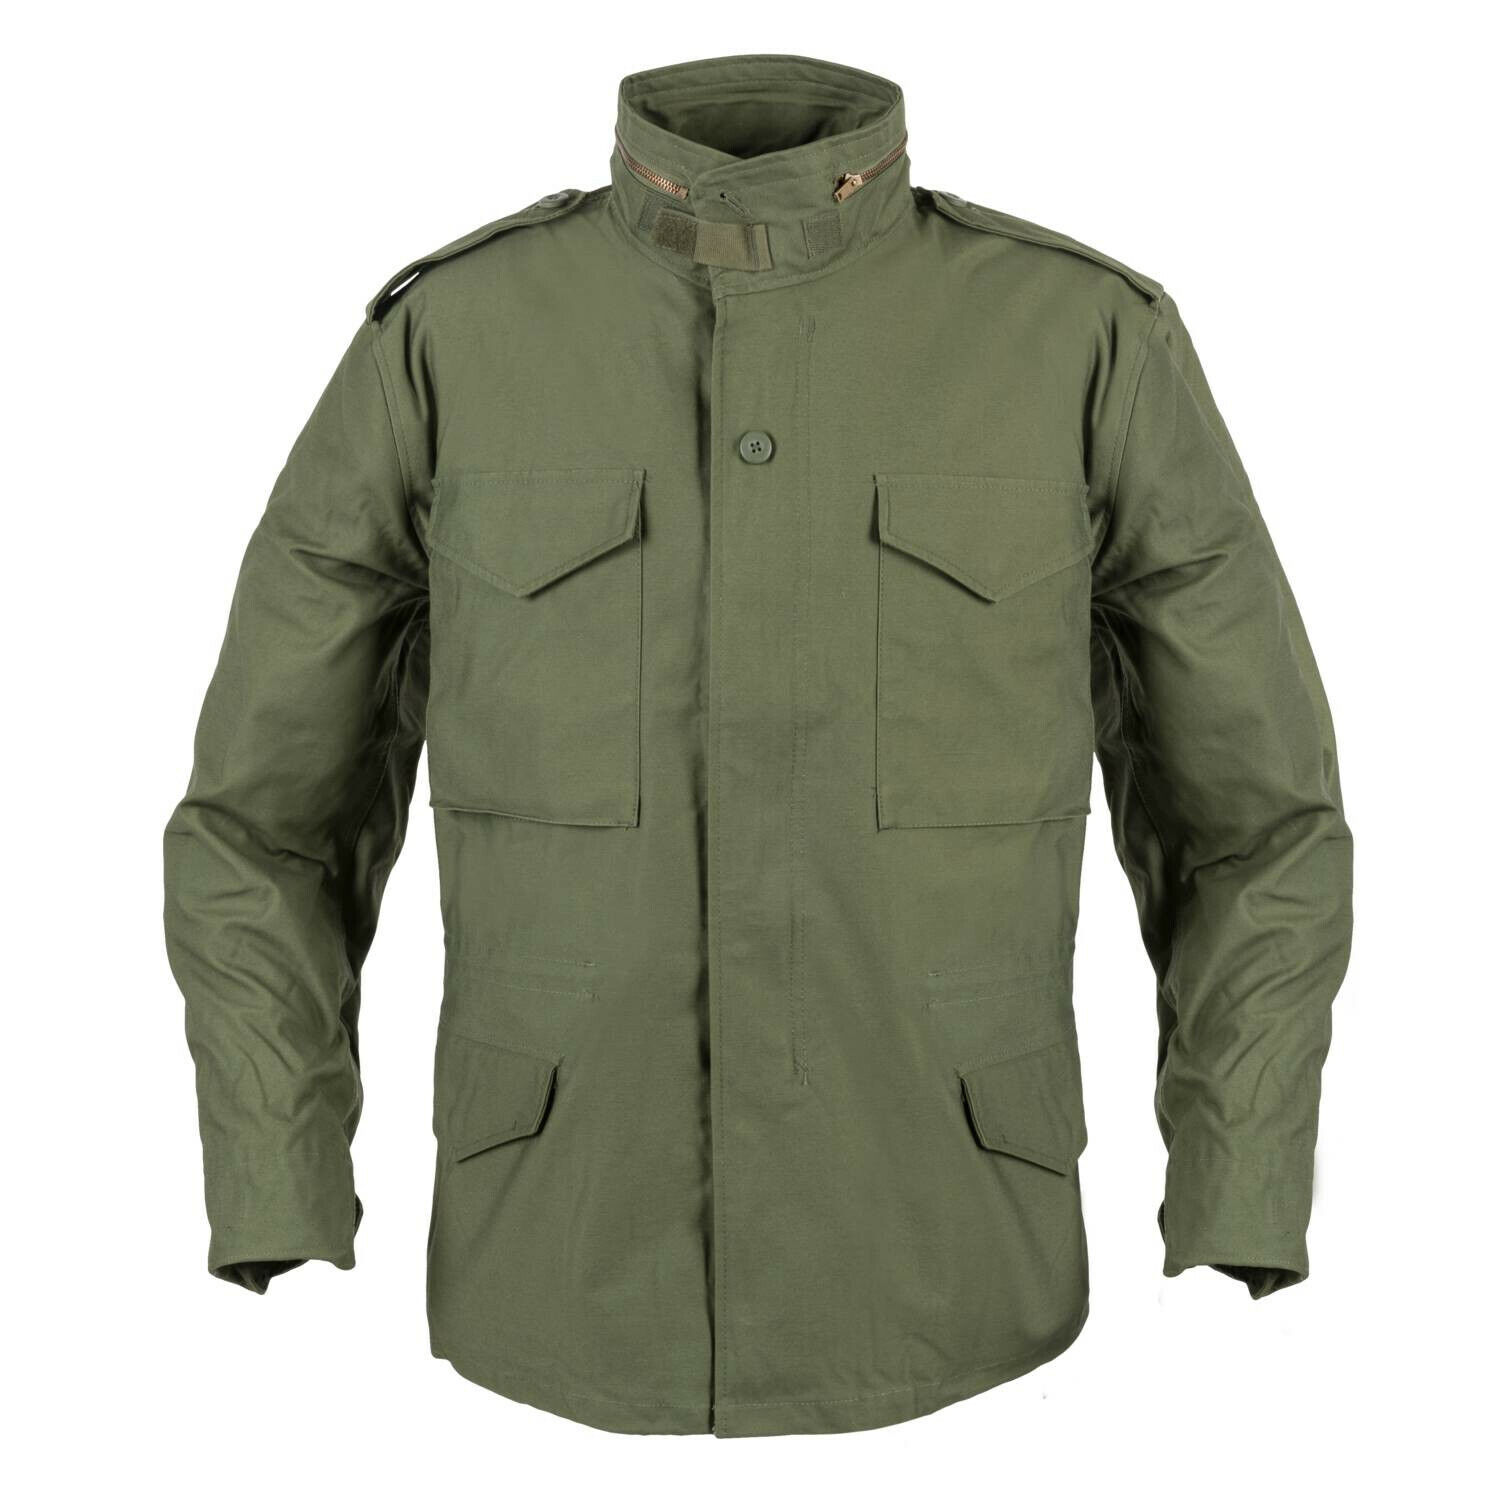 Us m65 chaqueta Army m65 reforger Jacket verde oliva con forro mr Medium regular